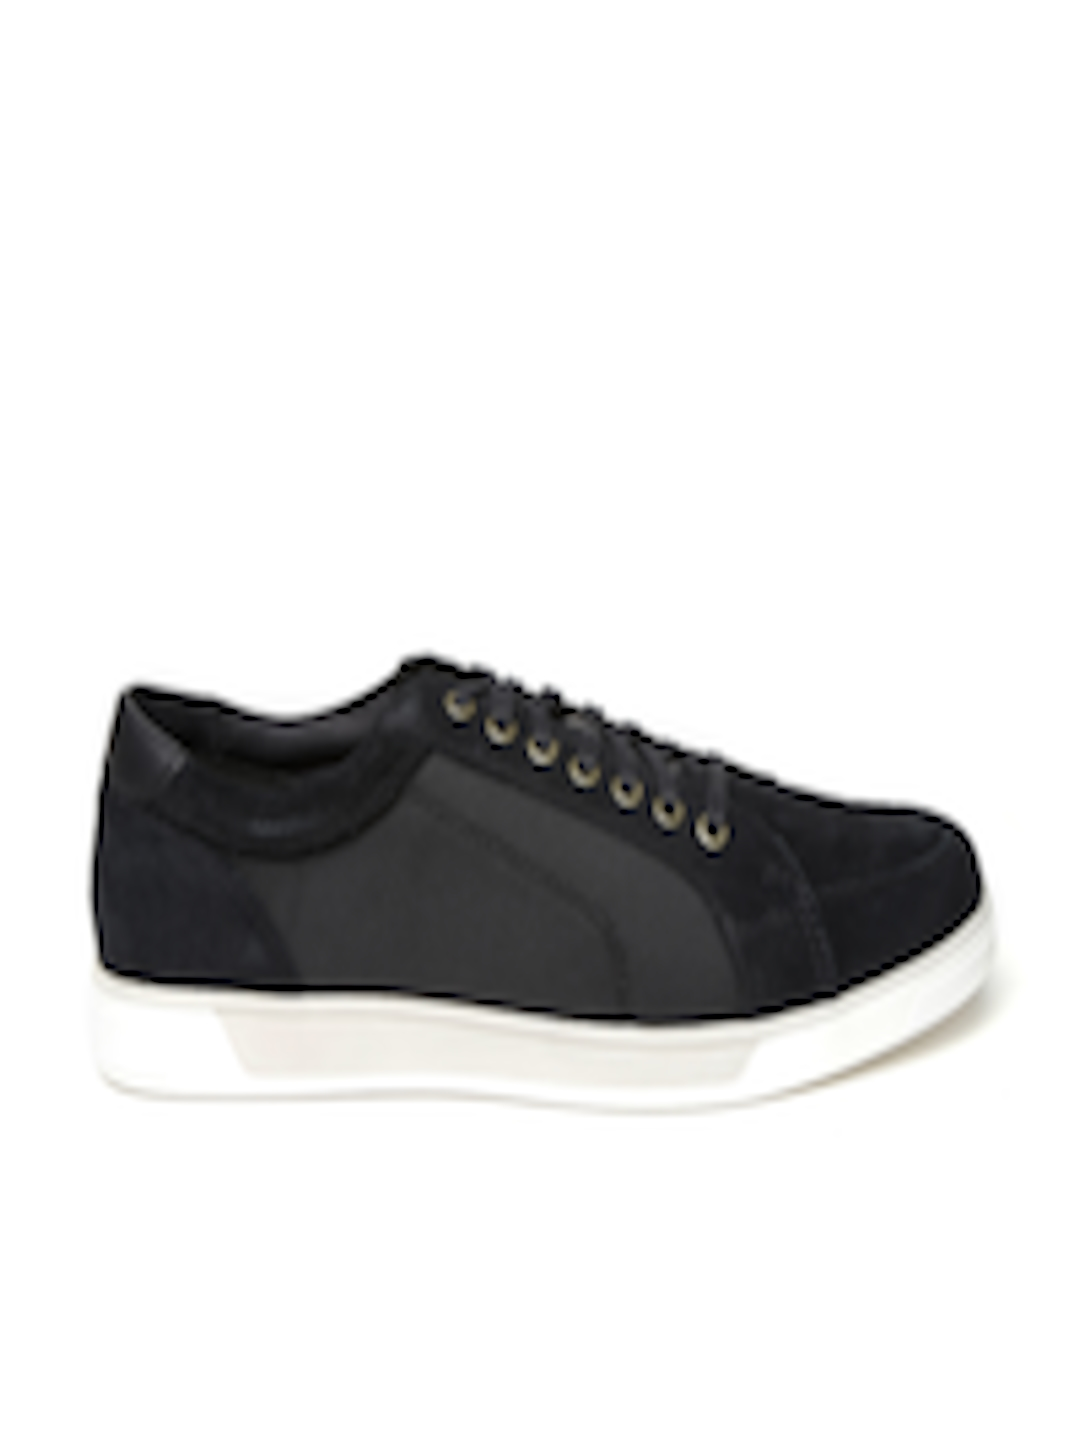 buy cole haan black casual shoes casual shoes for